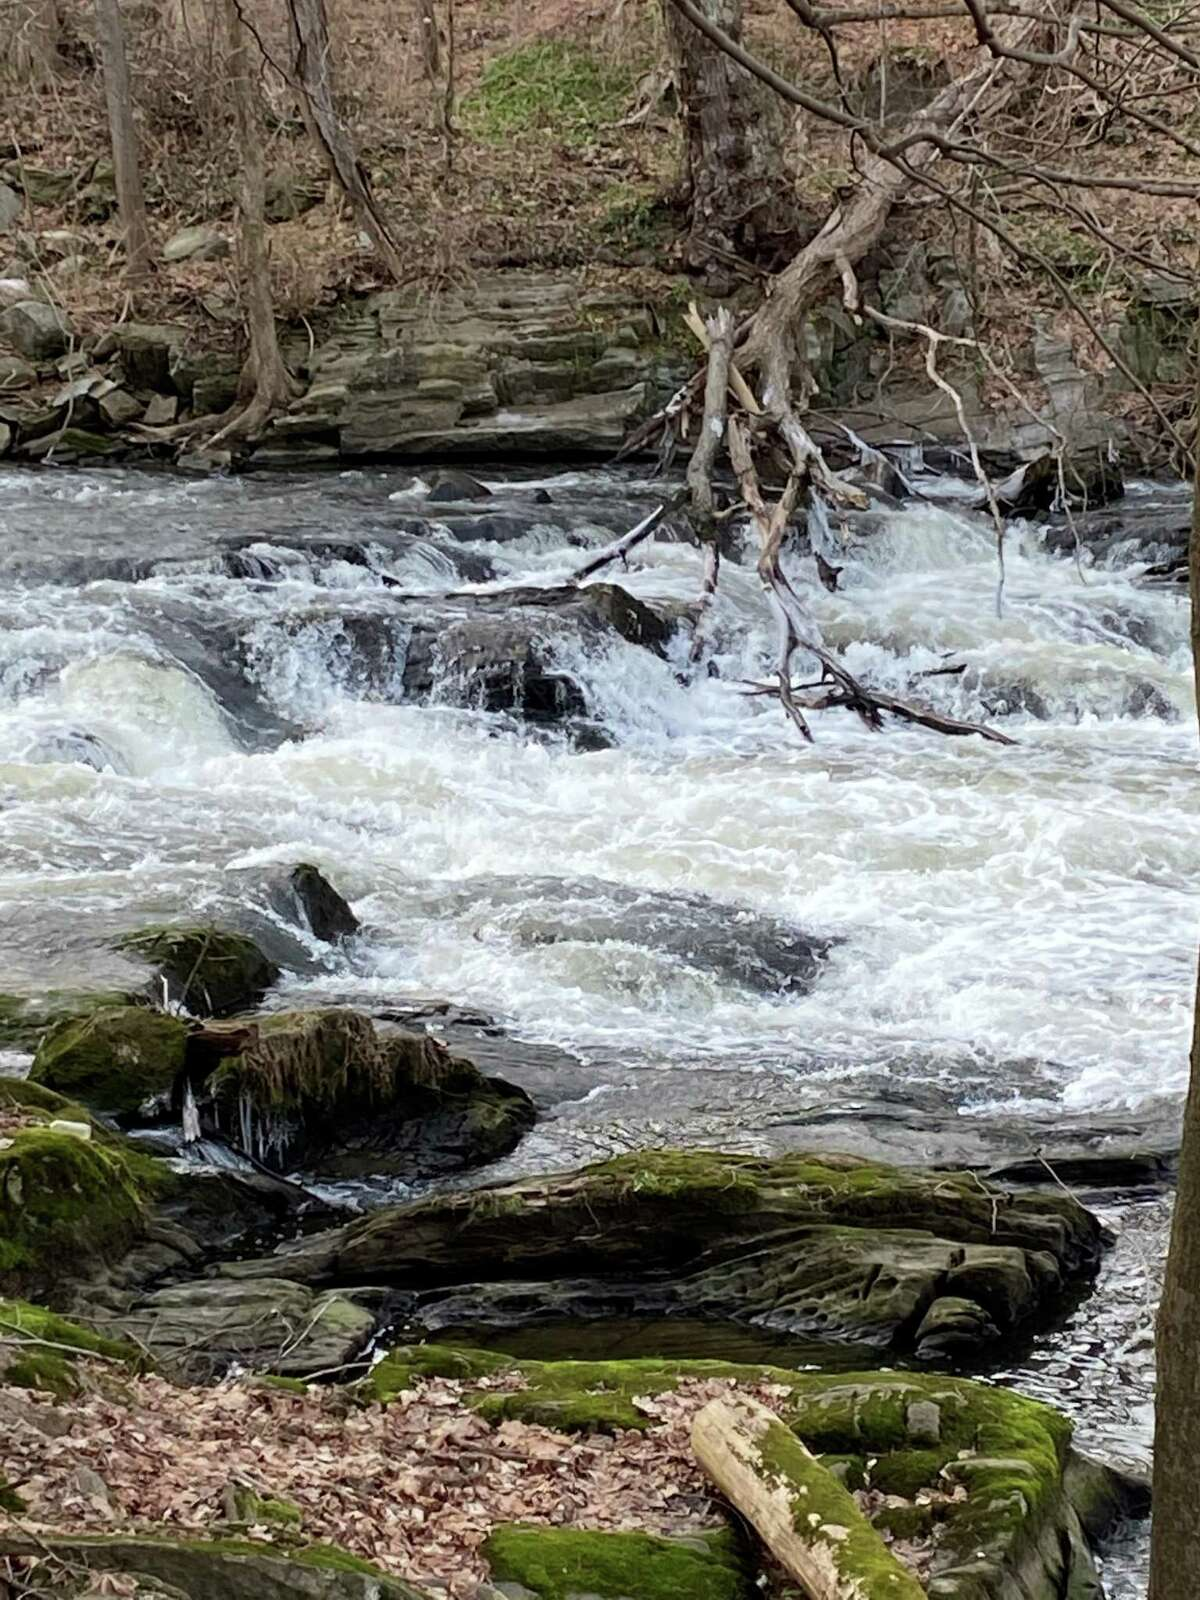 The cascading waters of the Still River run through Harrybrooke in New Milford.